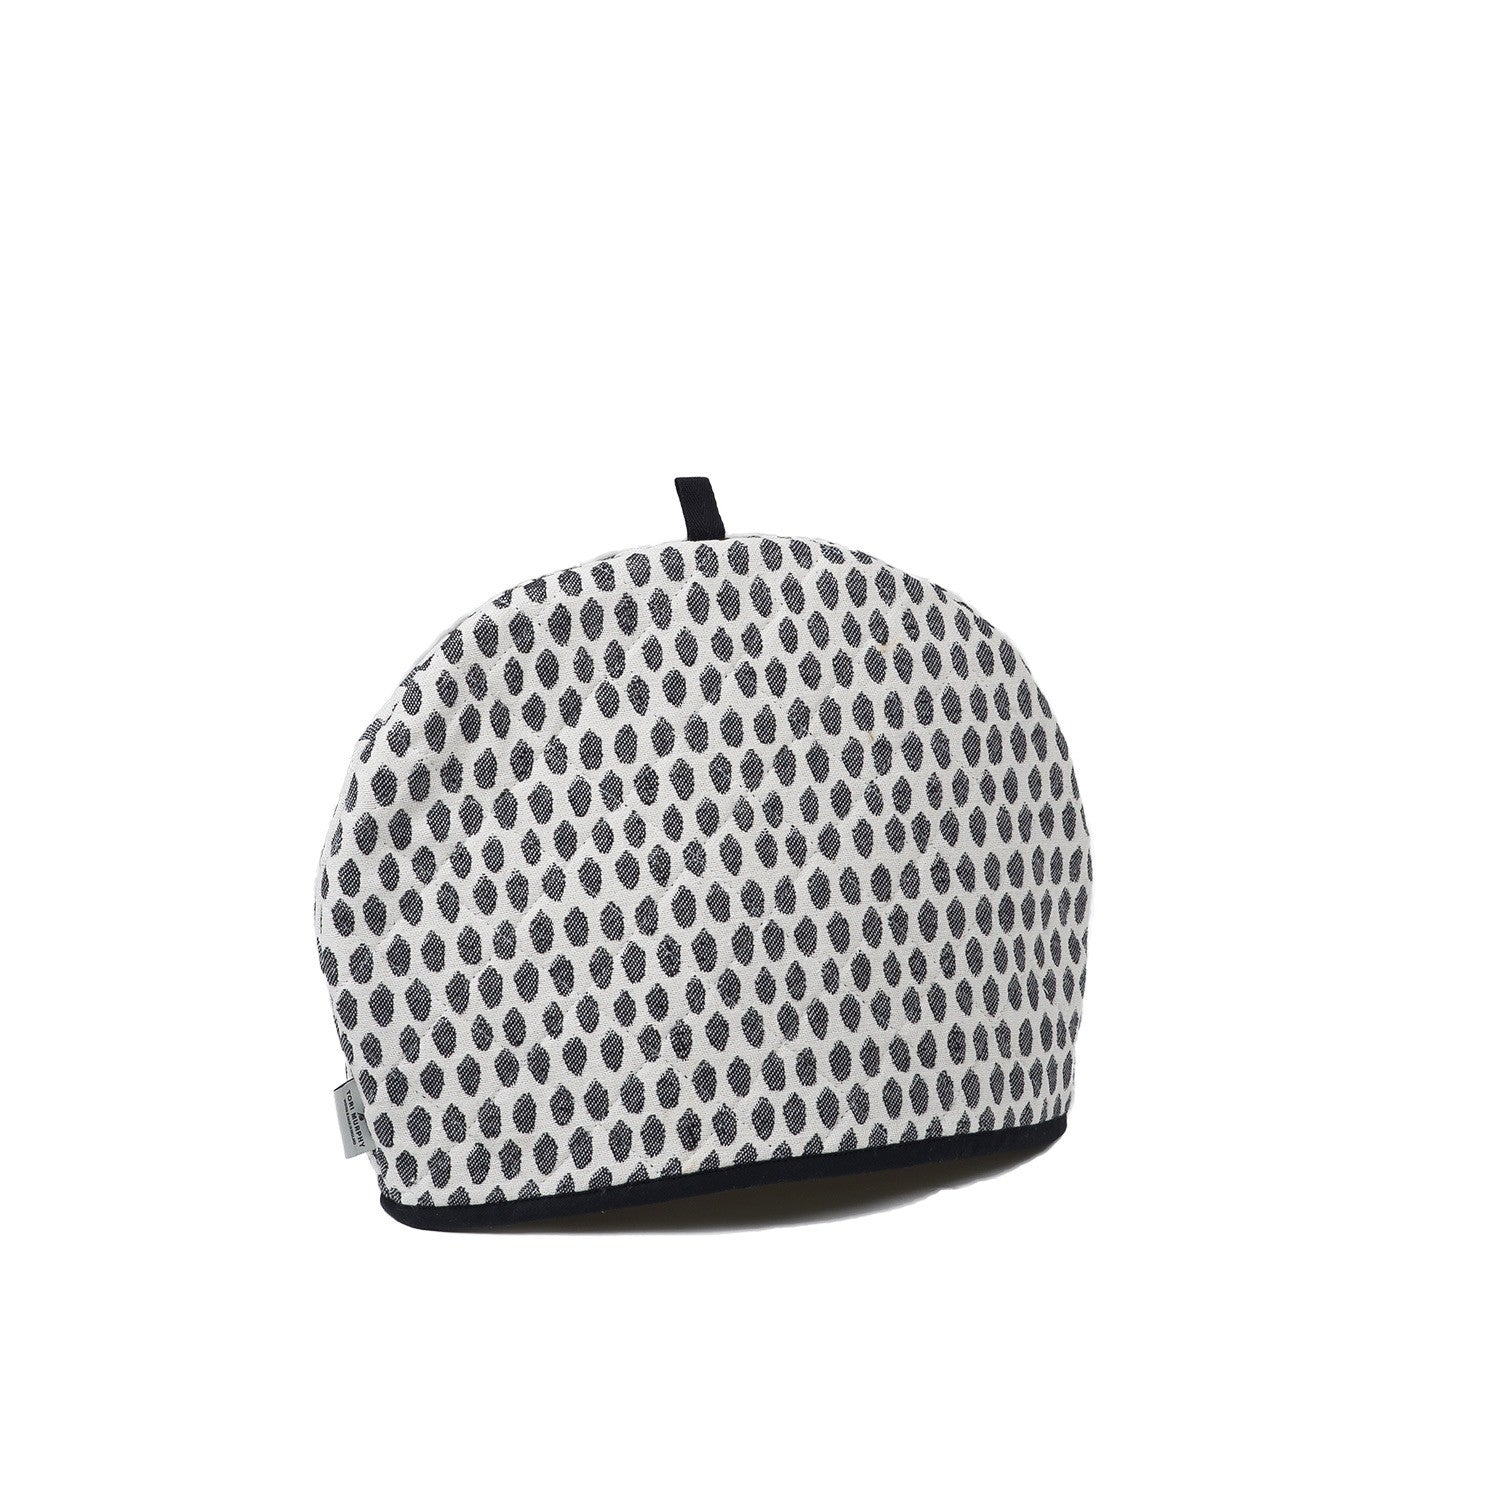 Elca Tea Cosy Black on Linen